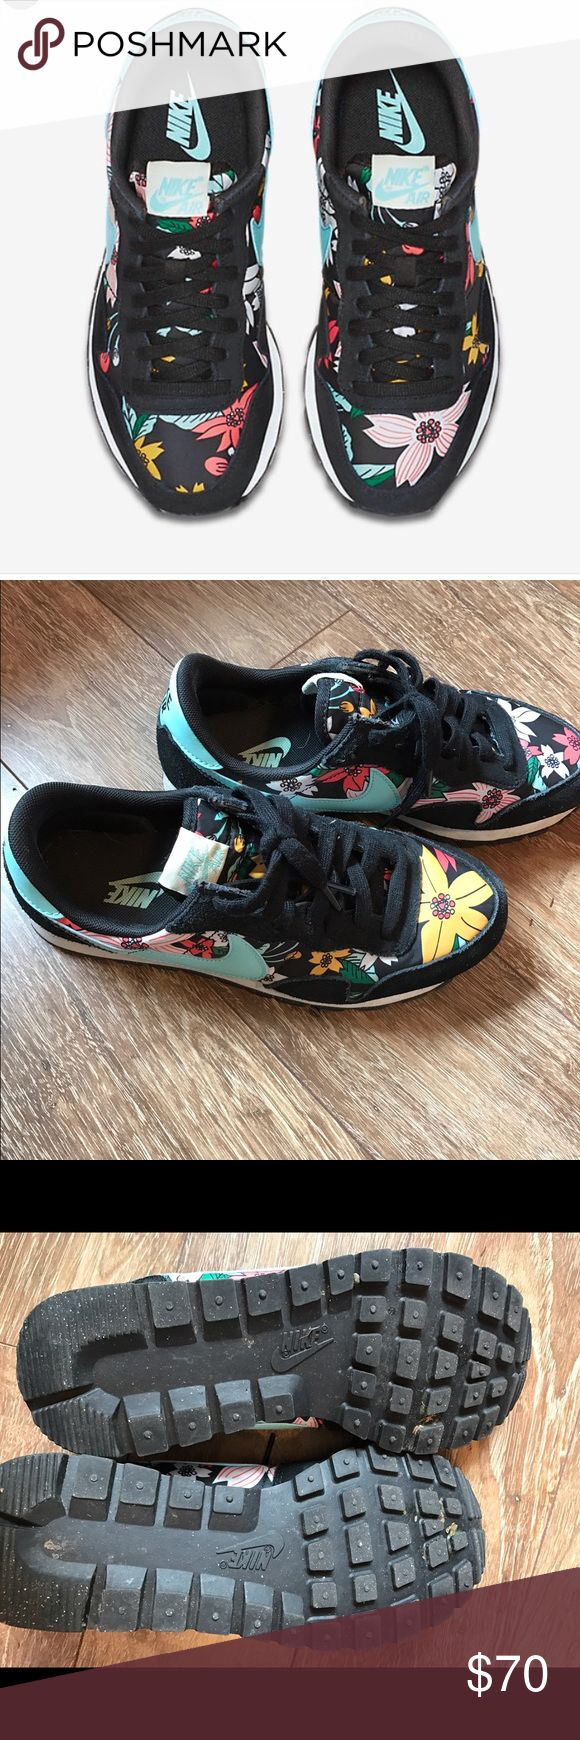 Women's Nike Air Pegasus '83 flower print sneakers Cute floral print Nike sneakers. Incredibly cute and of course, so comfy. Suede black accents with nylon floral design. You will get all the compliments with these lovelies ❤️️ Nike Shoes Sneakers